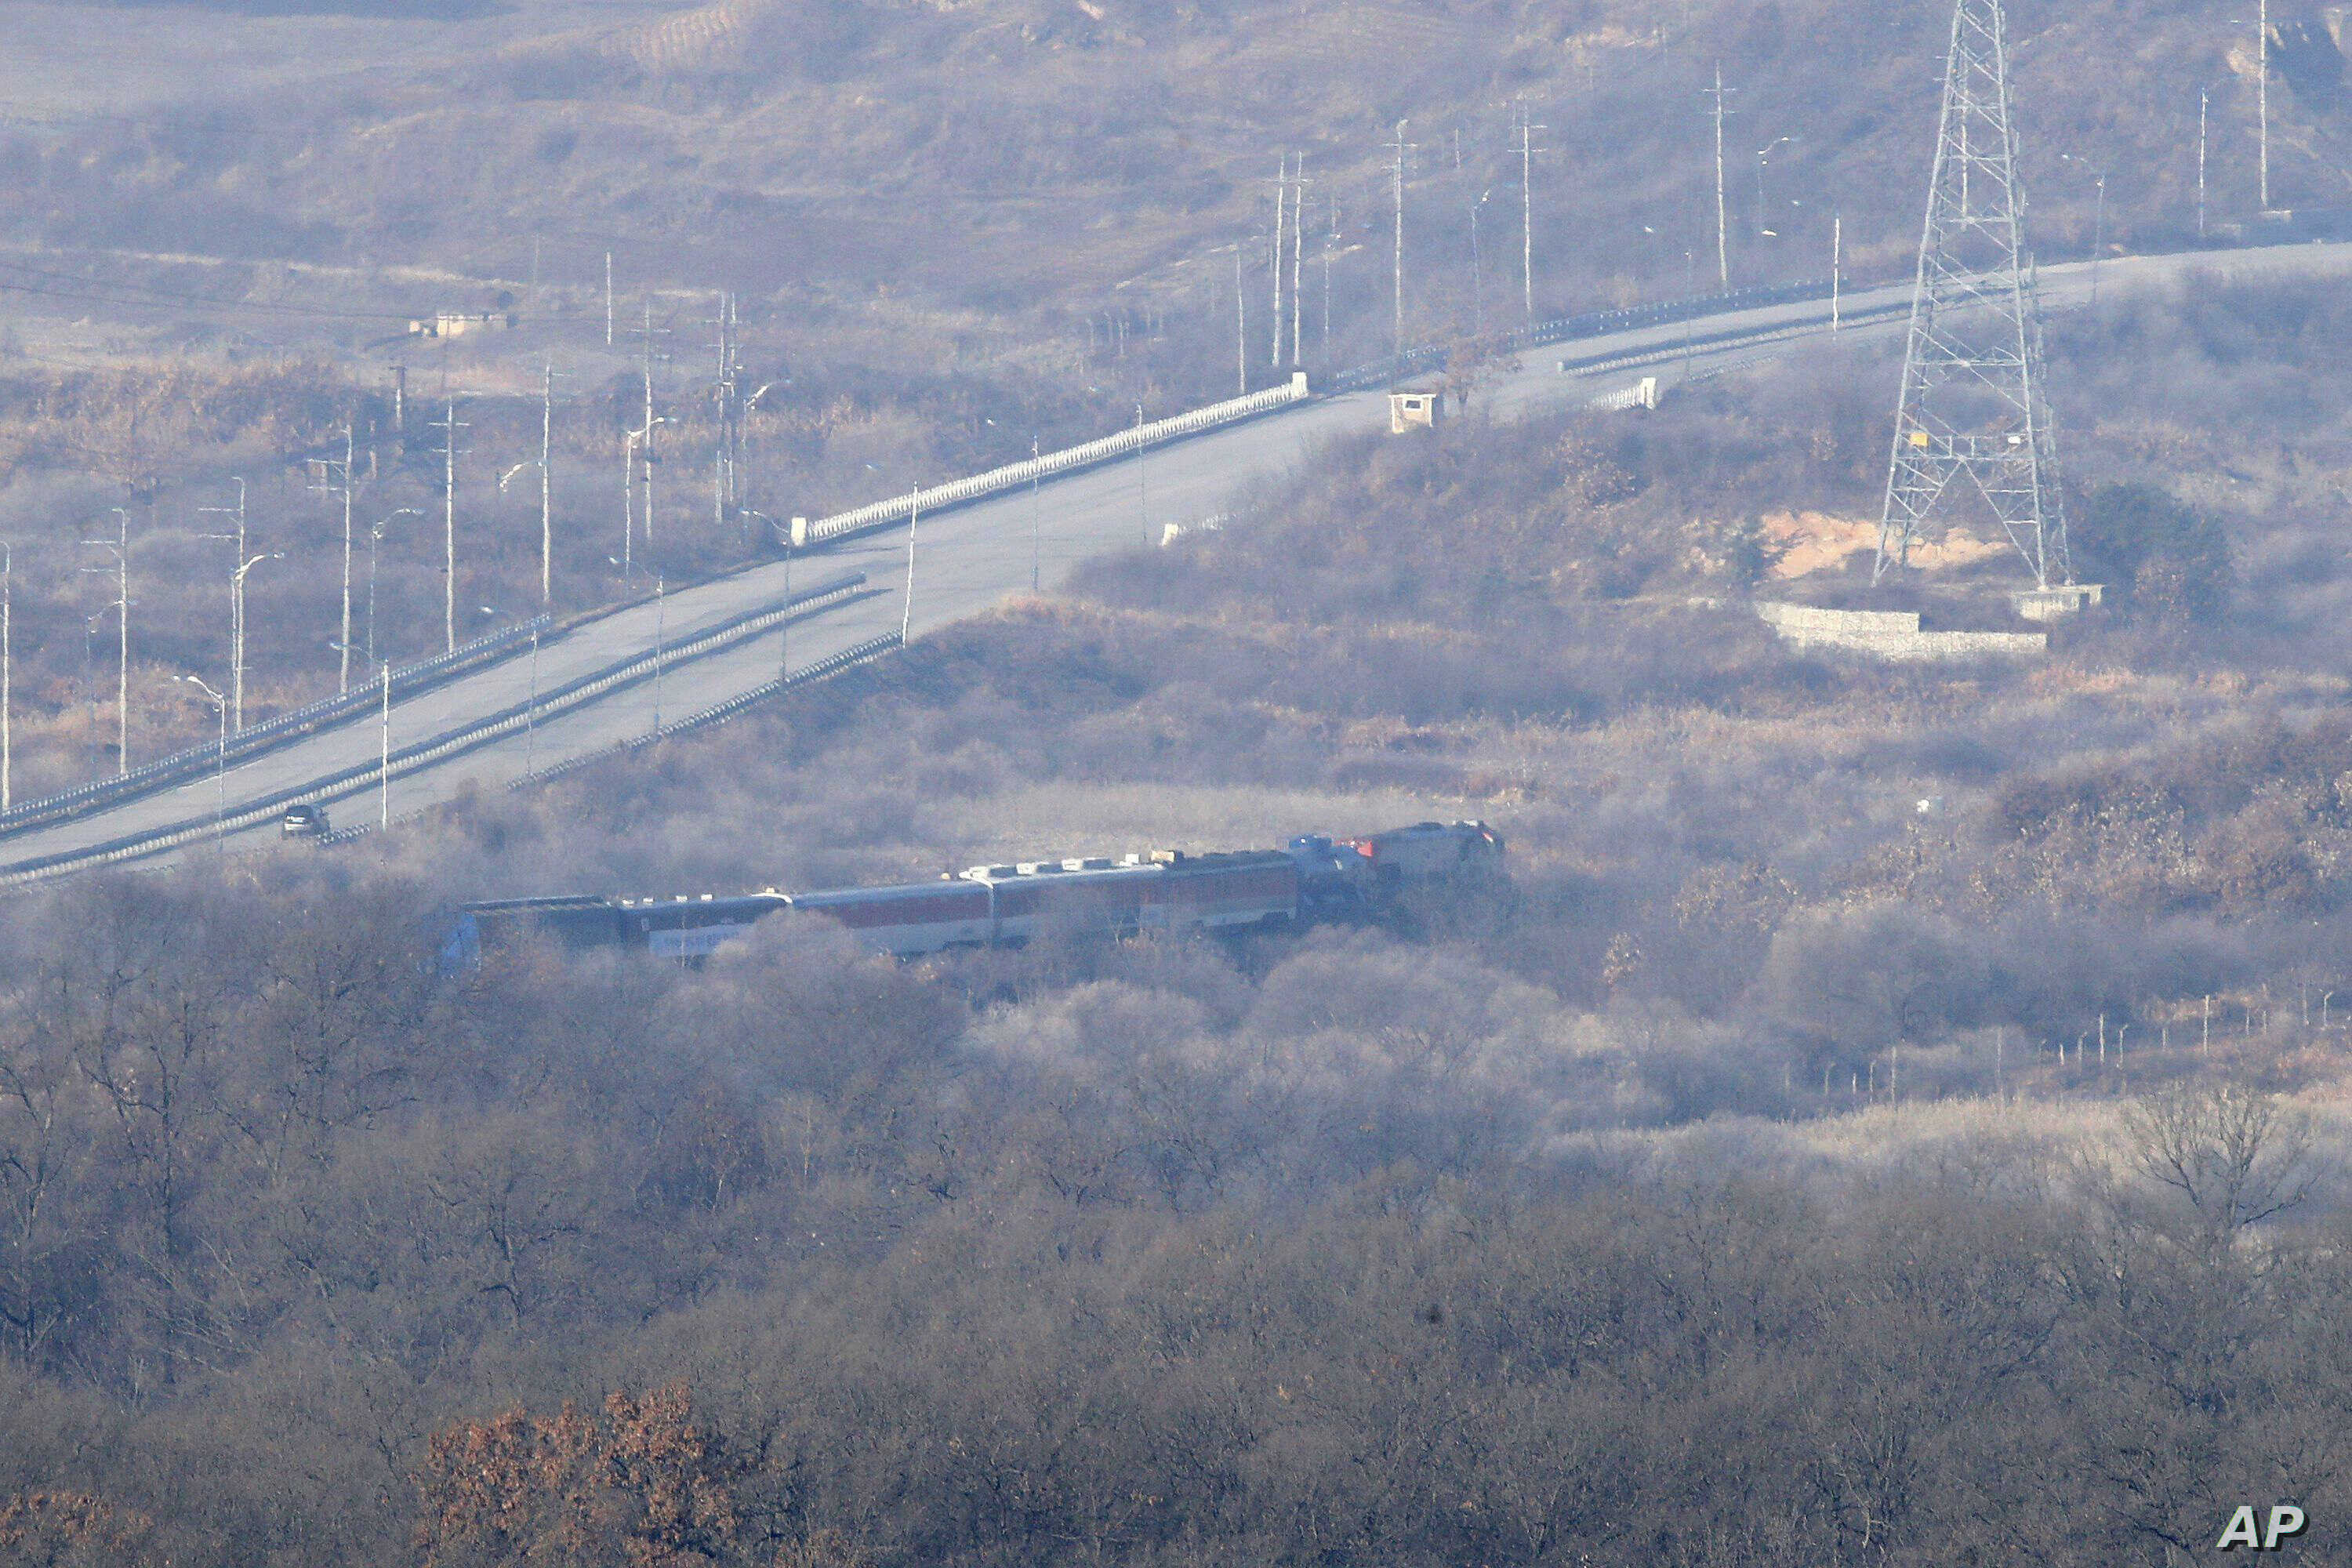 A South Korean train transporting dozens of South Korean officials runs on the rails which leads to North Korea, inside the demilitarized zone separating the two Koreas in Paju, South Korea, Nov. 30, 2018.